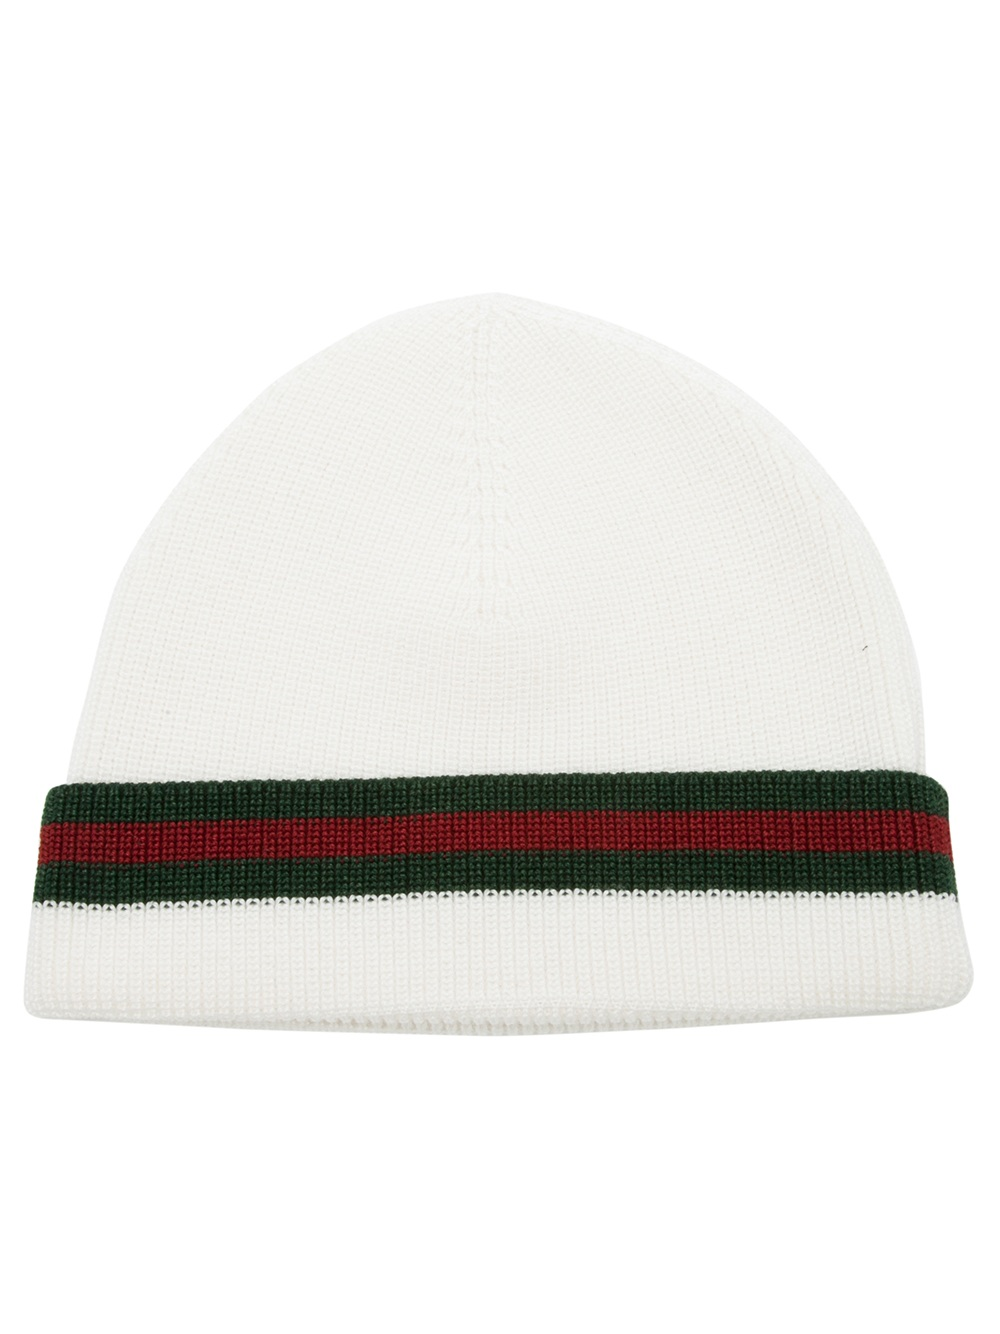 Lyst - Gucci Canvas Baseball Hat in Brown for Men |White Gucci Hat